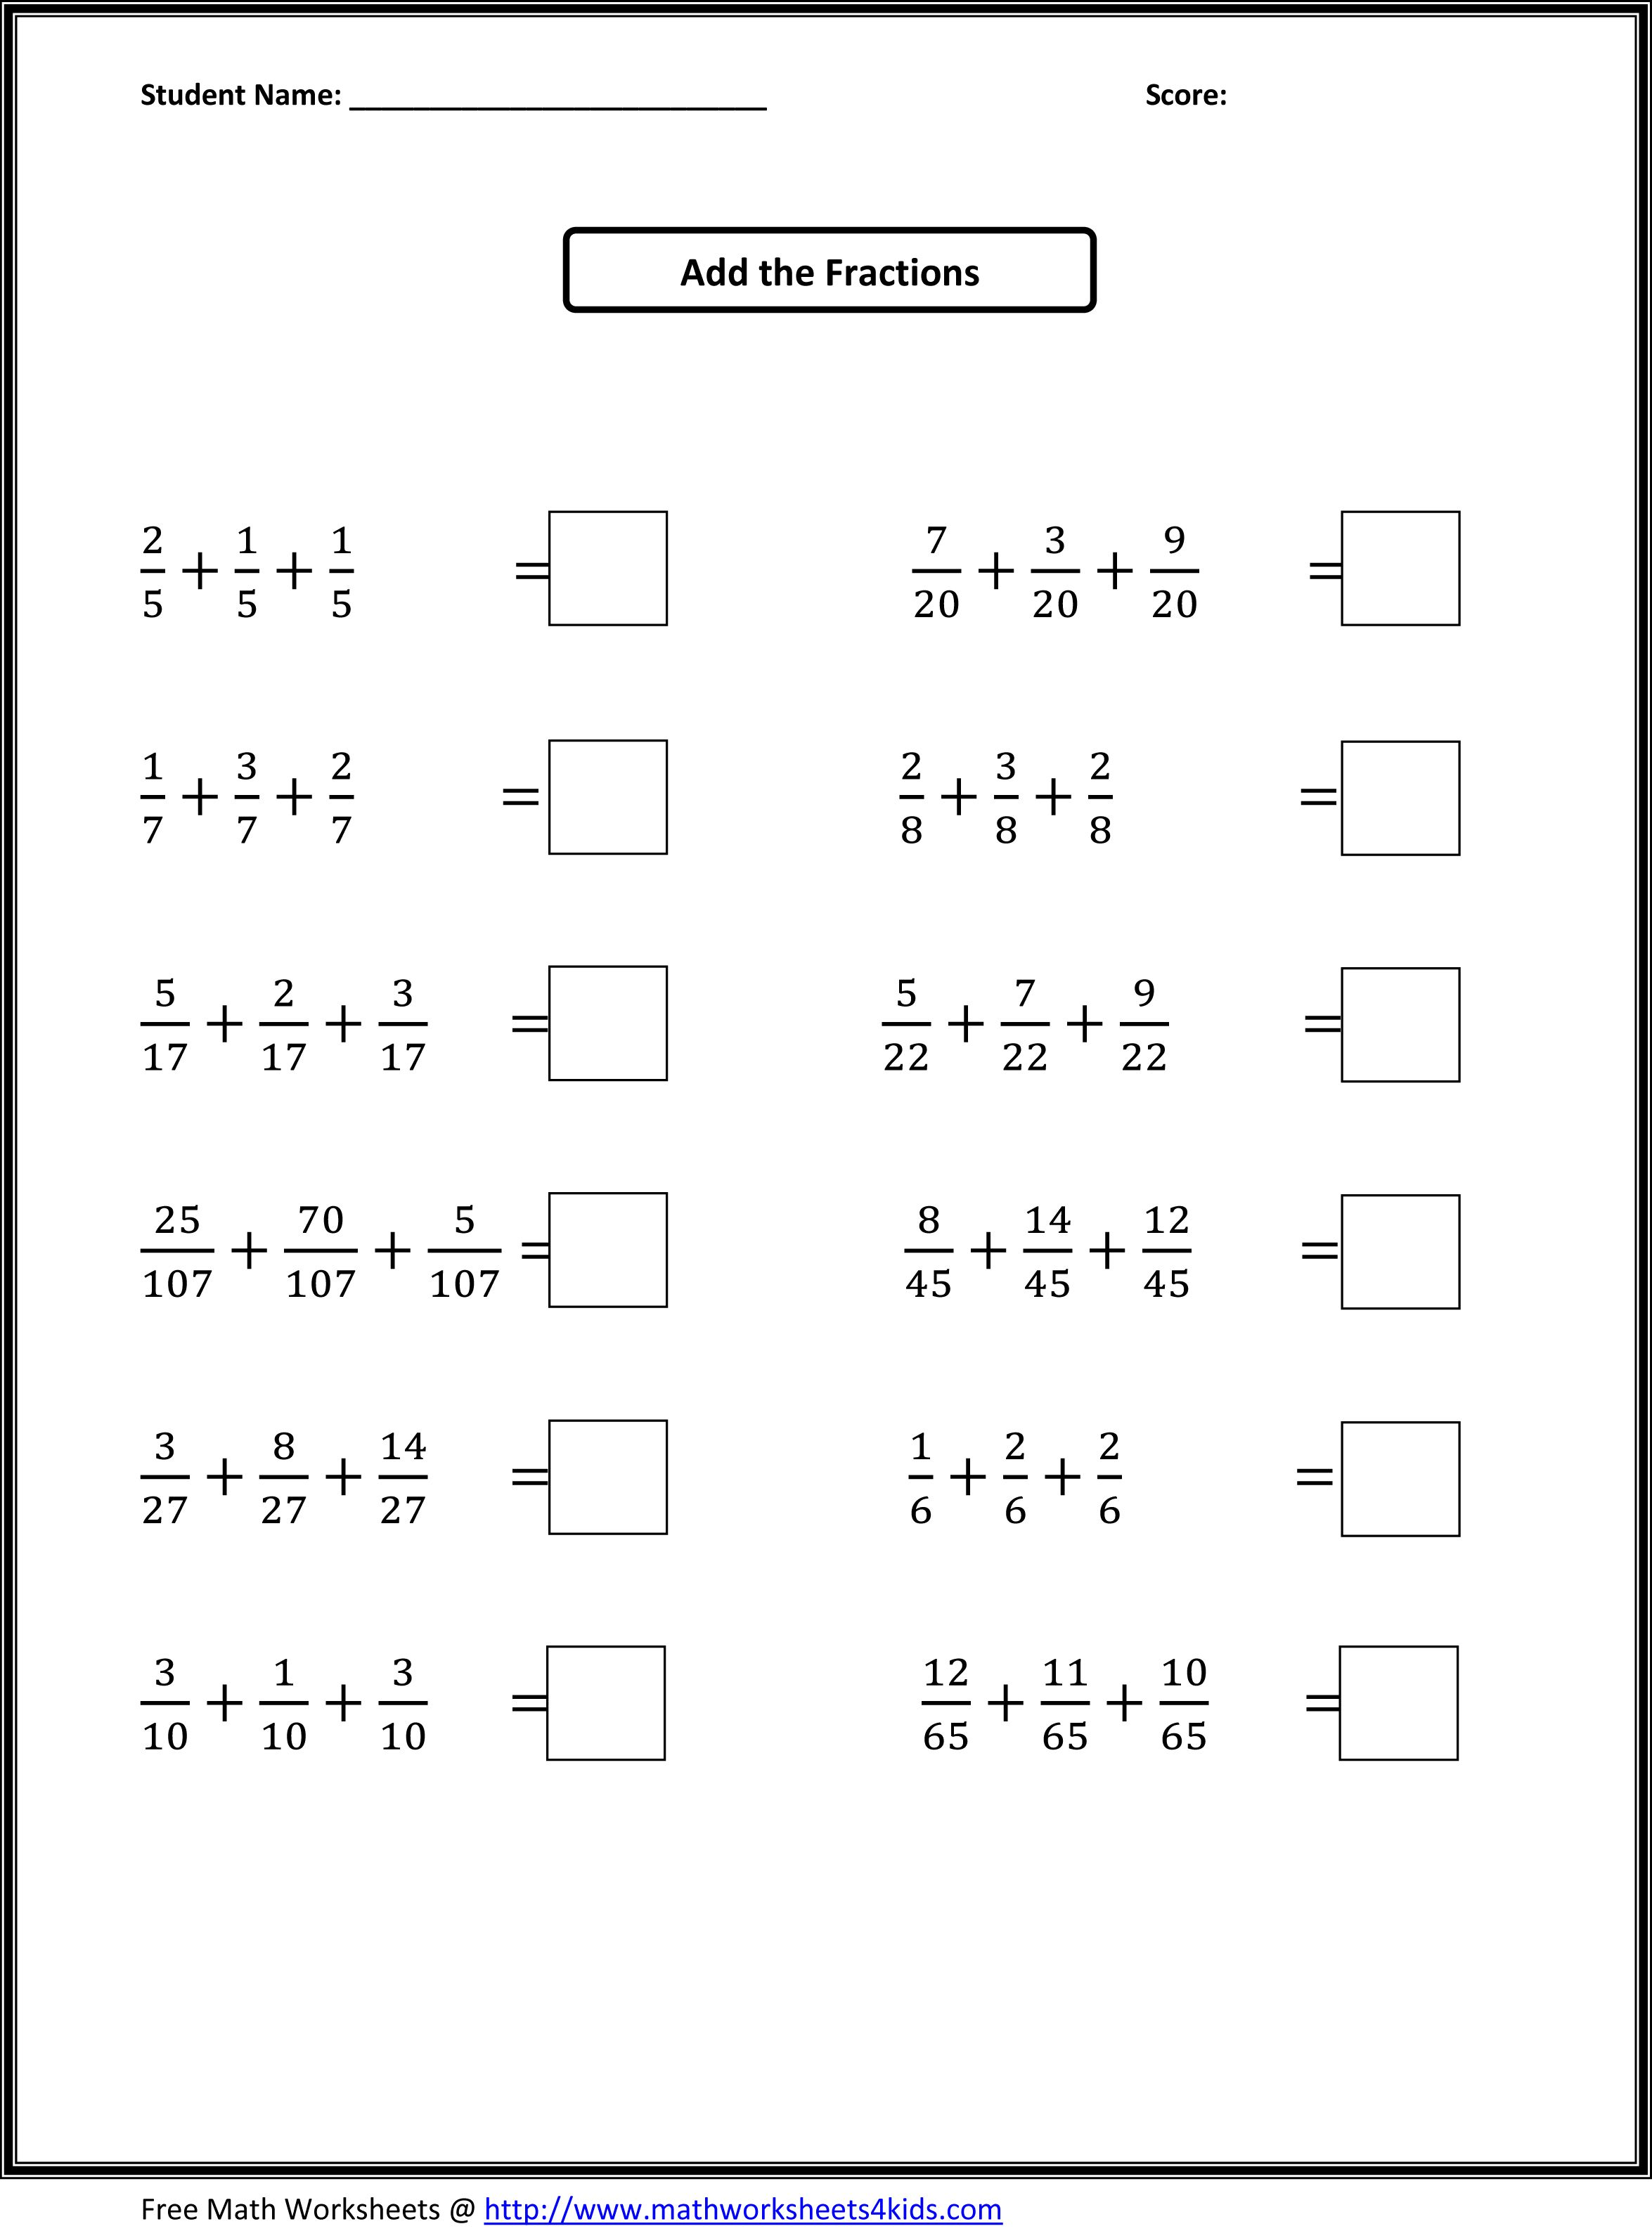 math worksheet : fractions easy work and math worksheets on pinterest : Math Worksheet Wizard